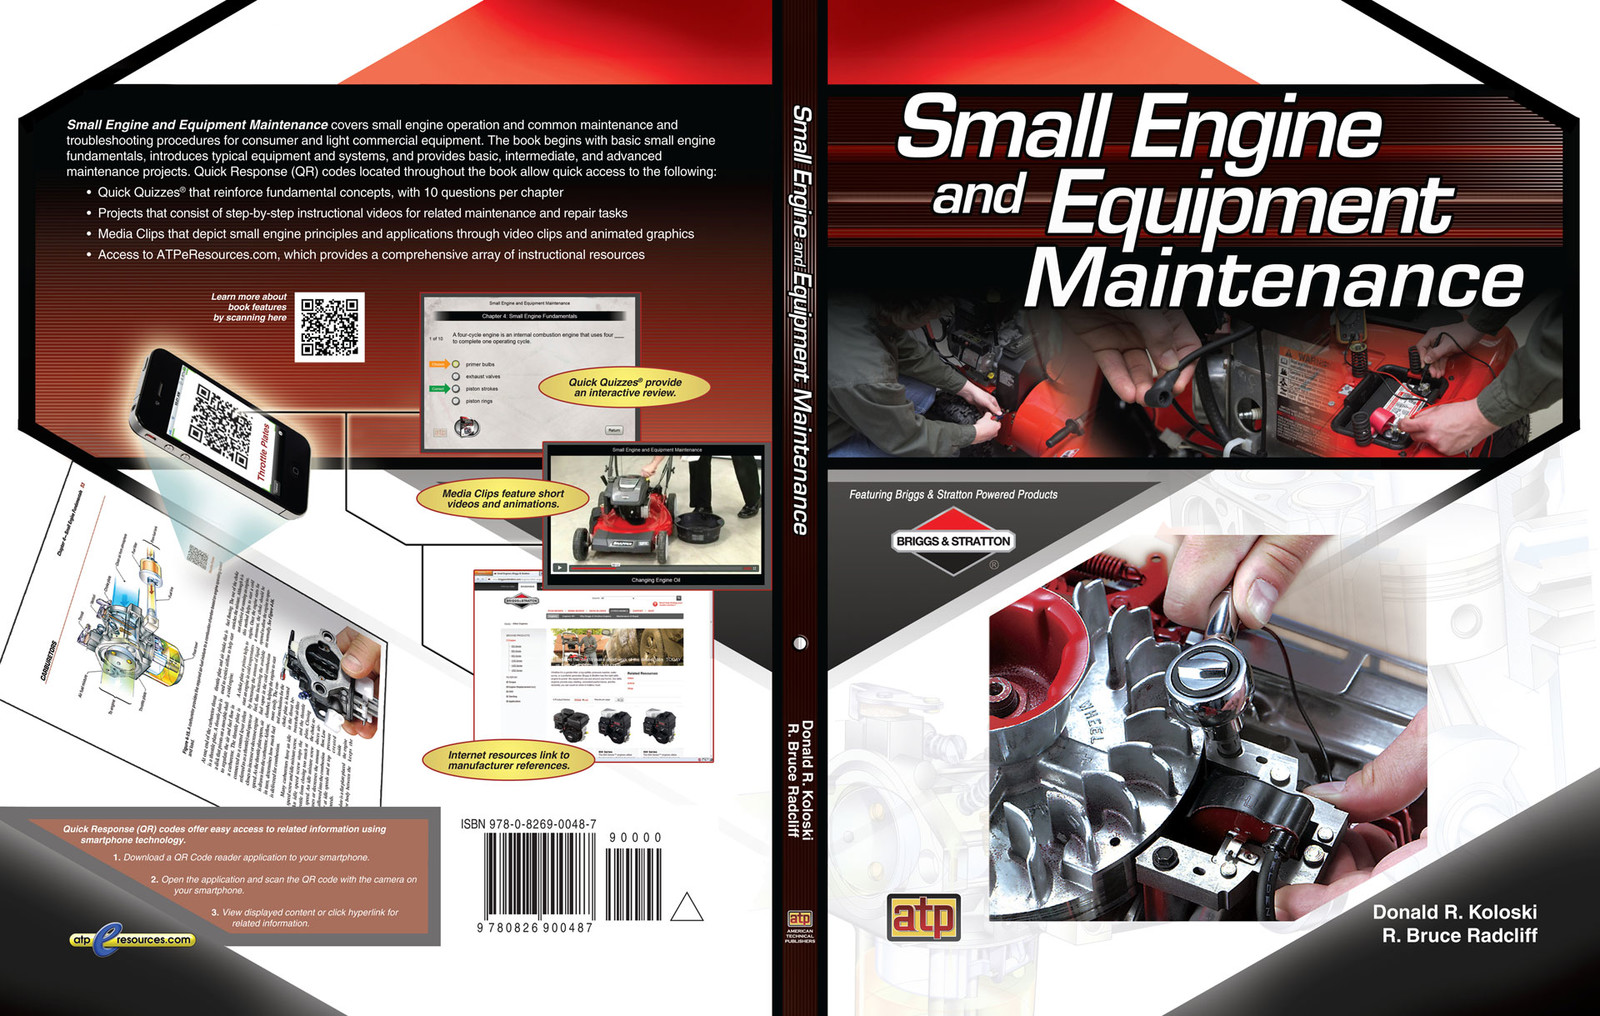 This was a softcover book with a design meant to mimic the Briggs and Stratton logo. I created the design in Adobe Photoshop with final text touches in Adobe Illustrator.